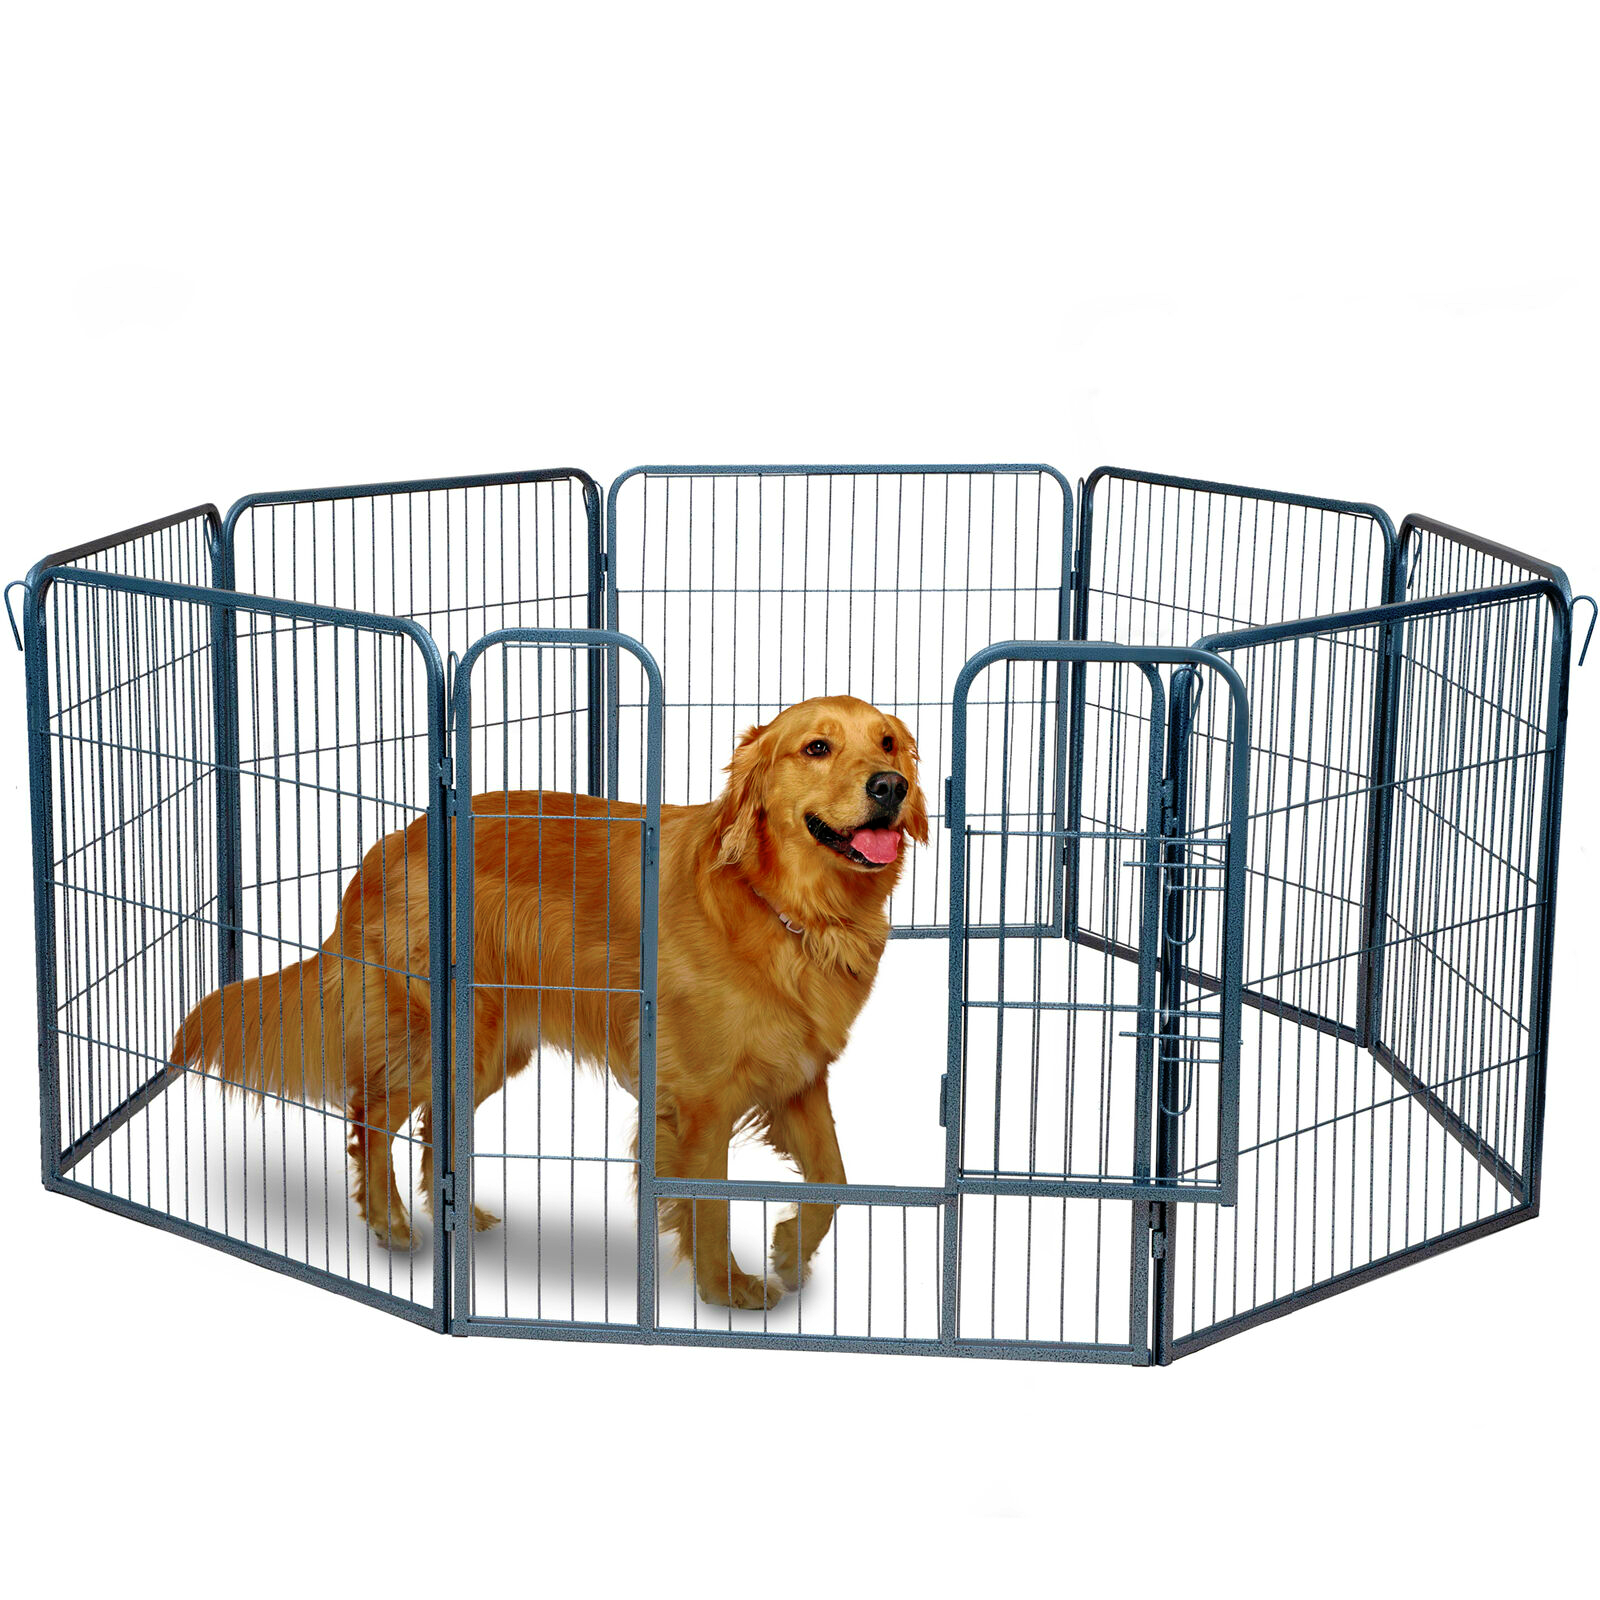 "Dog Pet Playpen Heavy Duty Metal Exercise Fence Folding Kennel 8 Panel 32"" (FREE SHIPPING - US ONLY)"